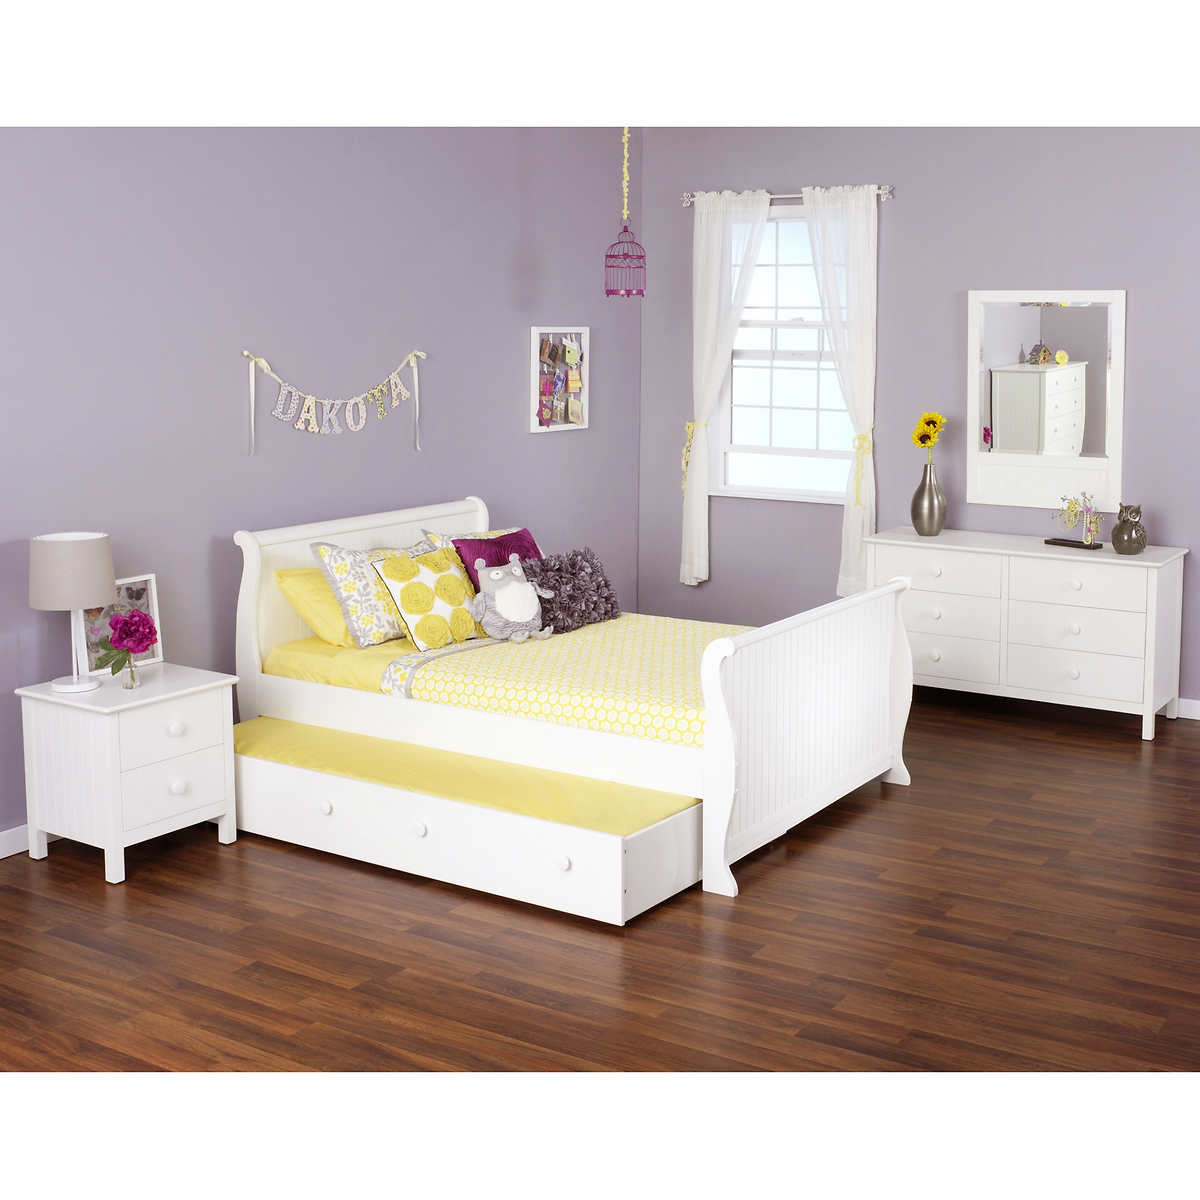 Full Size Bedroom Sets full bedroom sets | costco